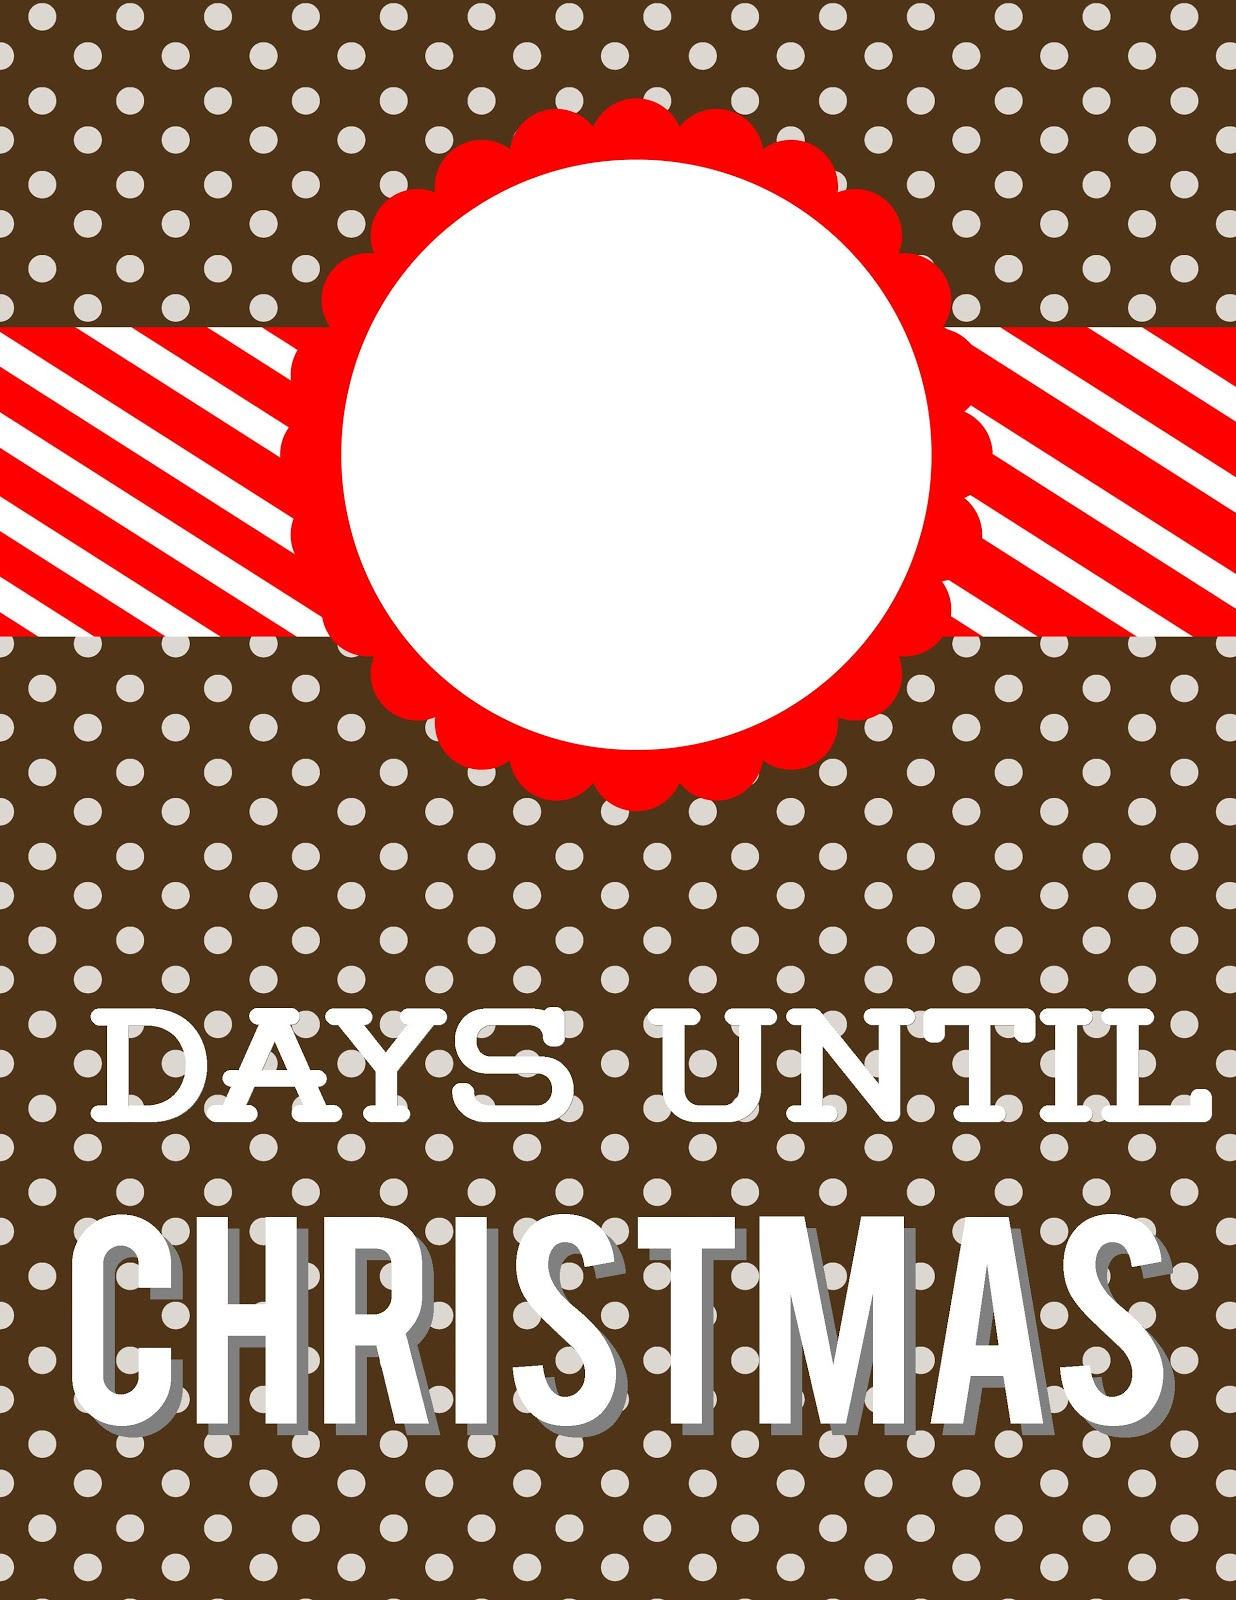 finding happiness one quote at a time countdown to christmas - How Much Time Till Christmas